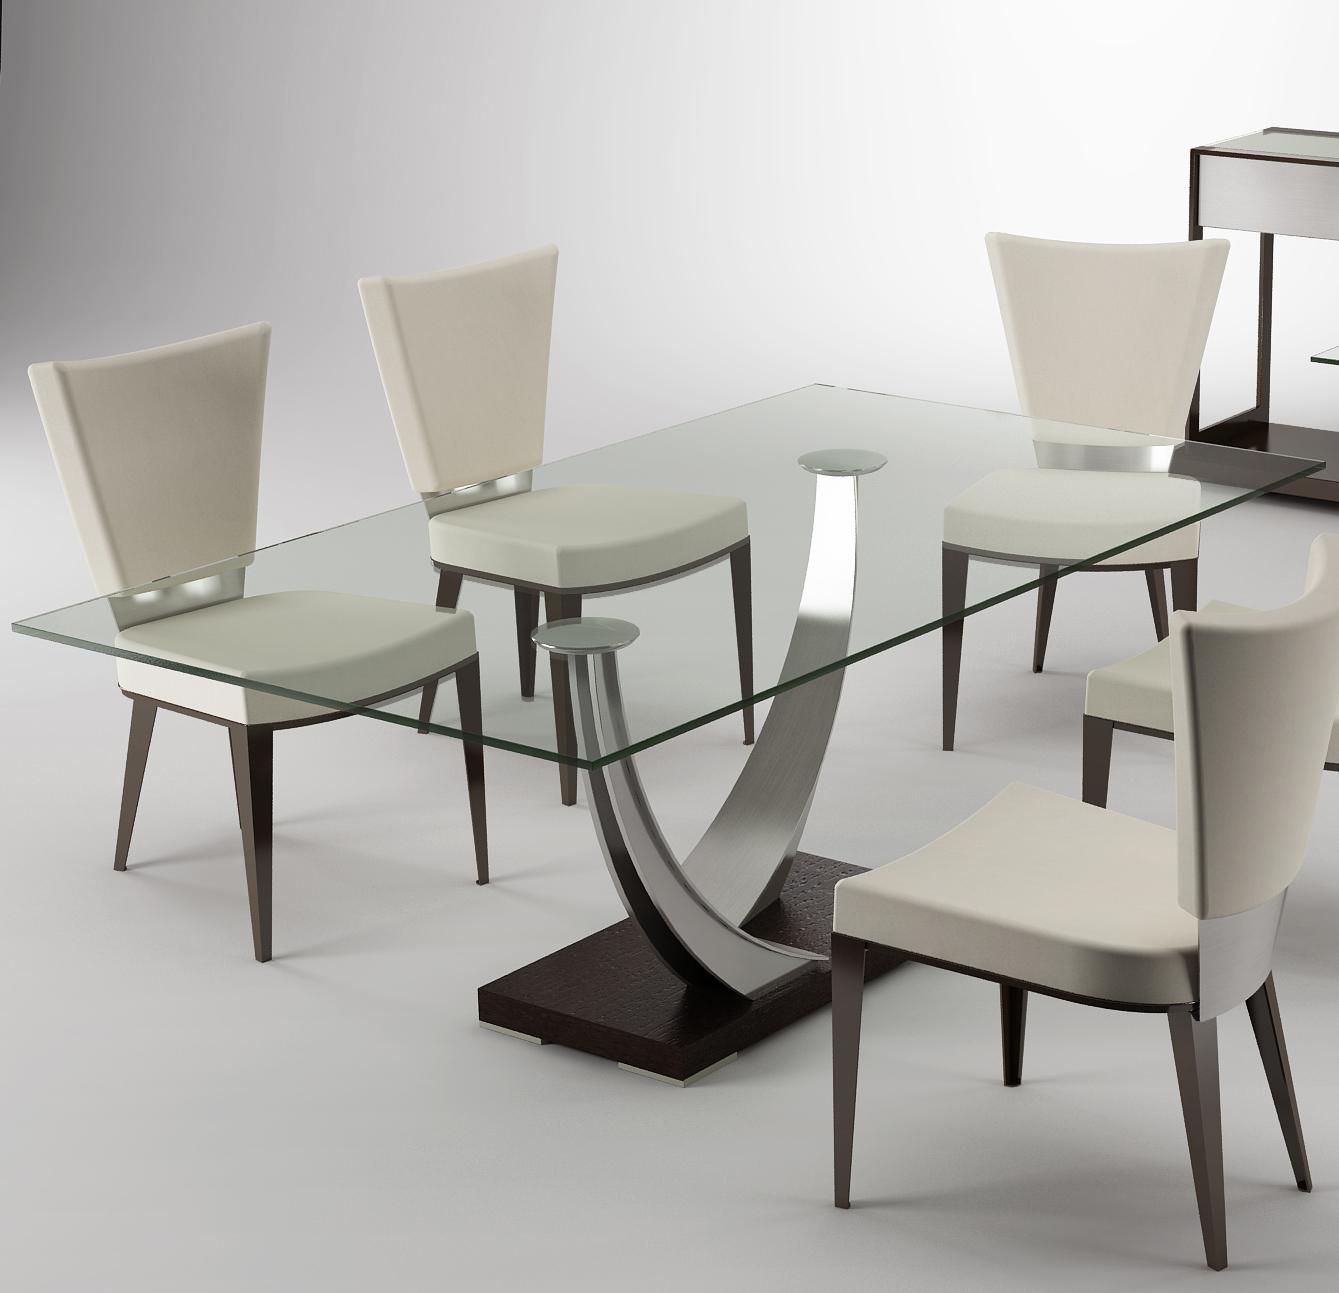 Modern Dining Tangent Dining Table By Elite Furniture Glass Dining Table Decor Dining Room Contemporary Glass Dining Room Table